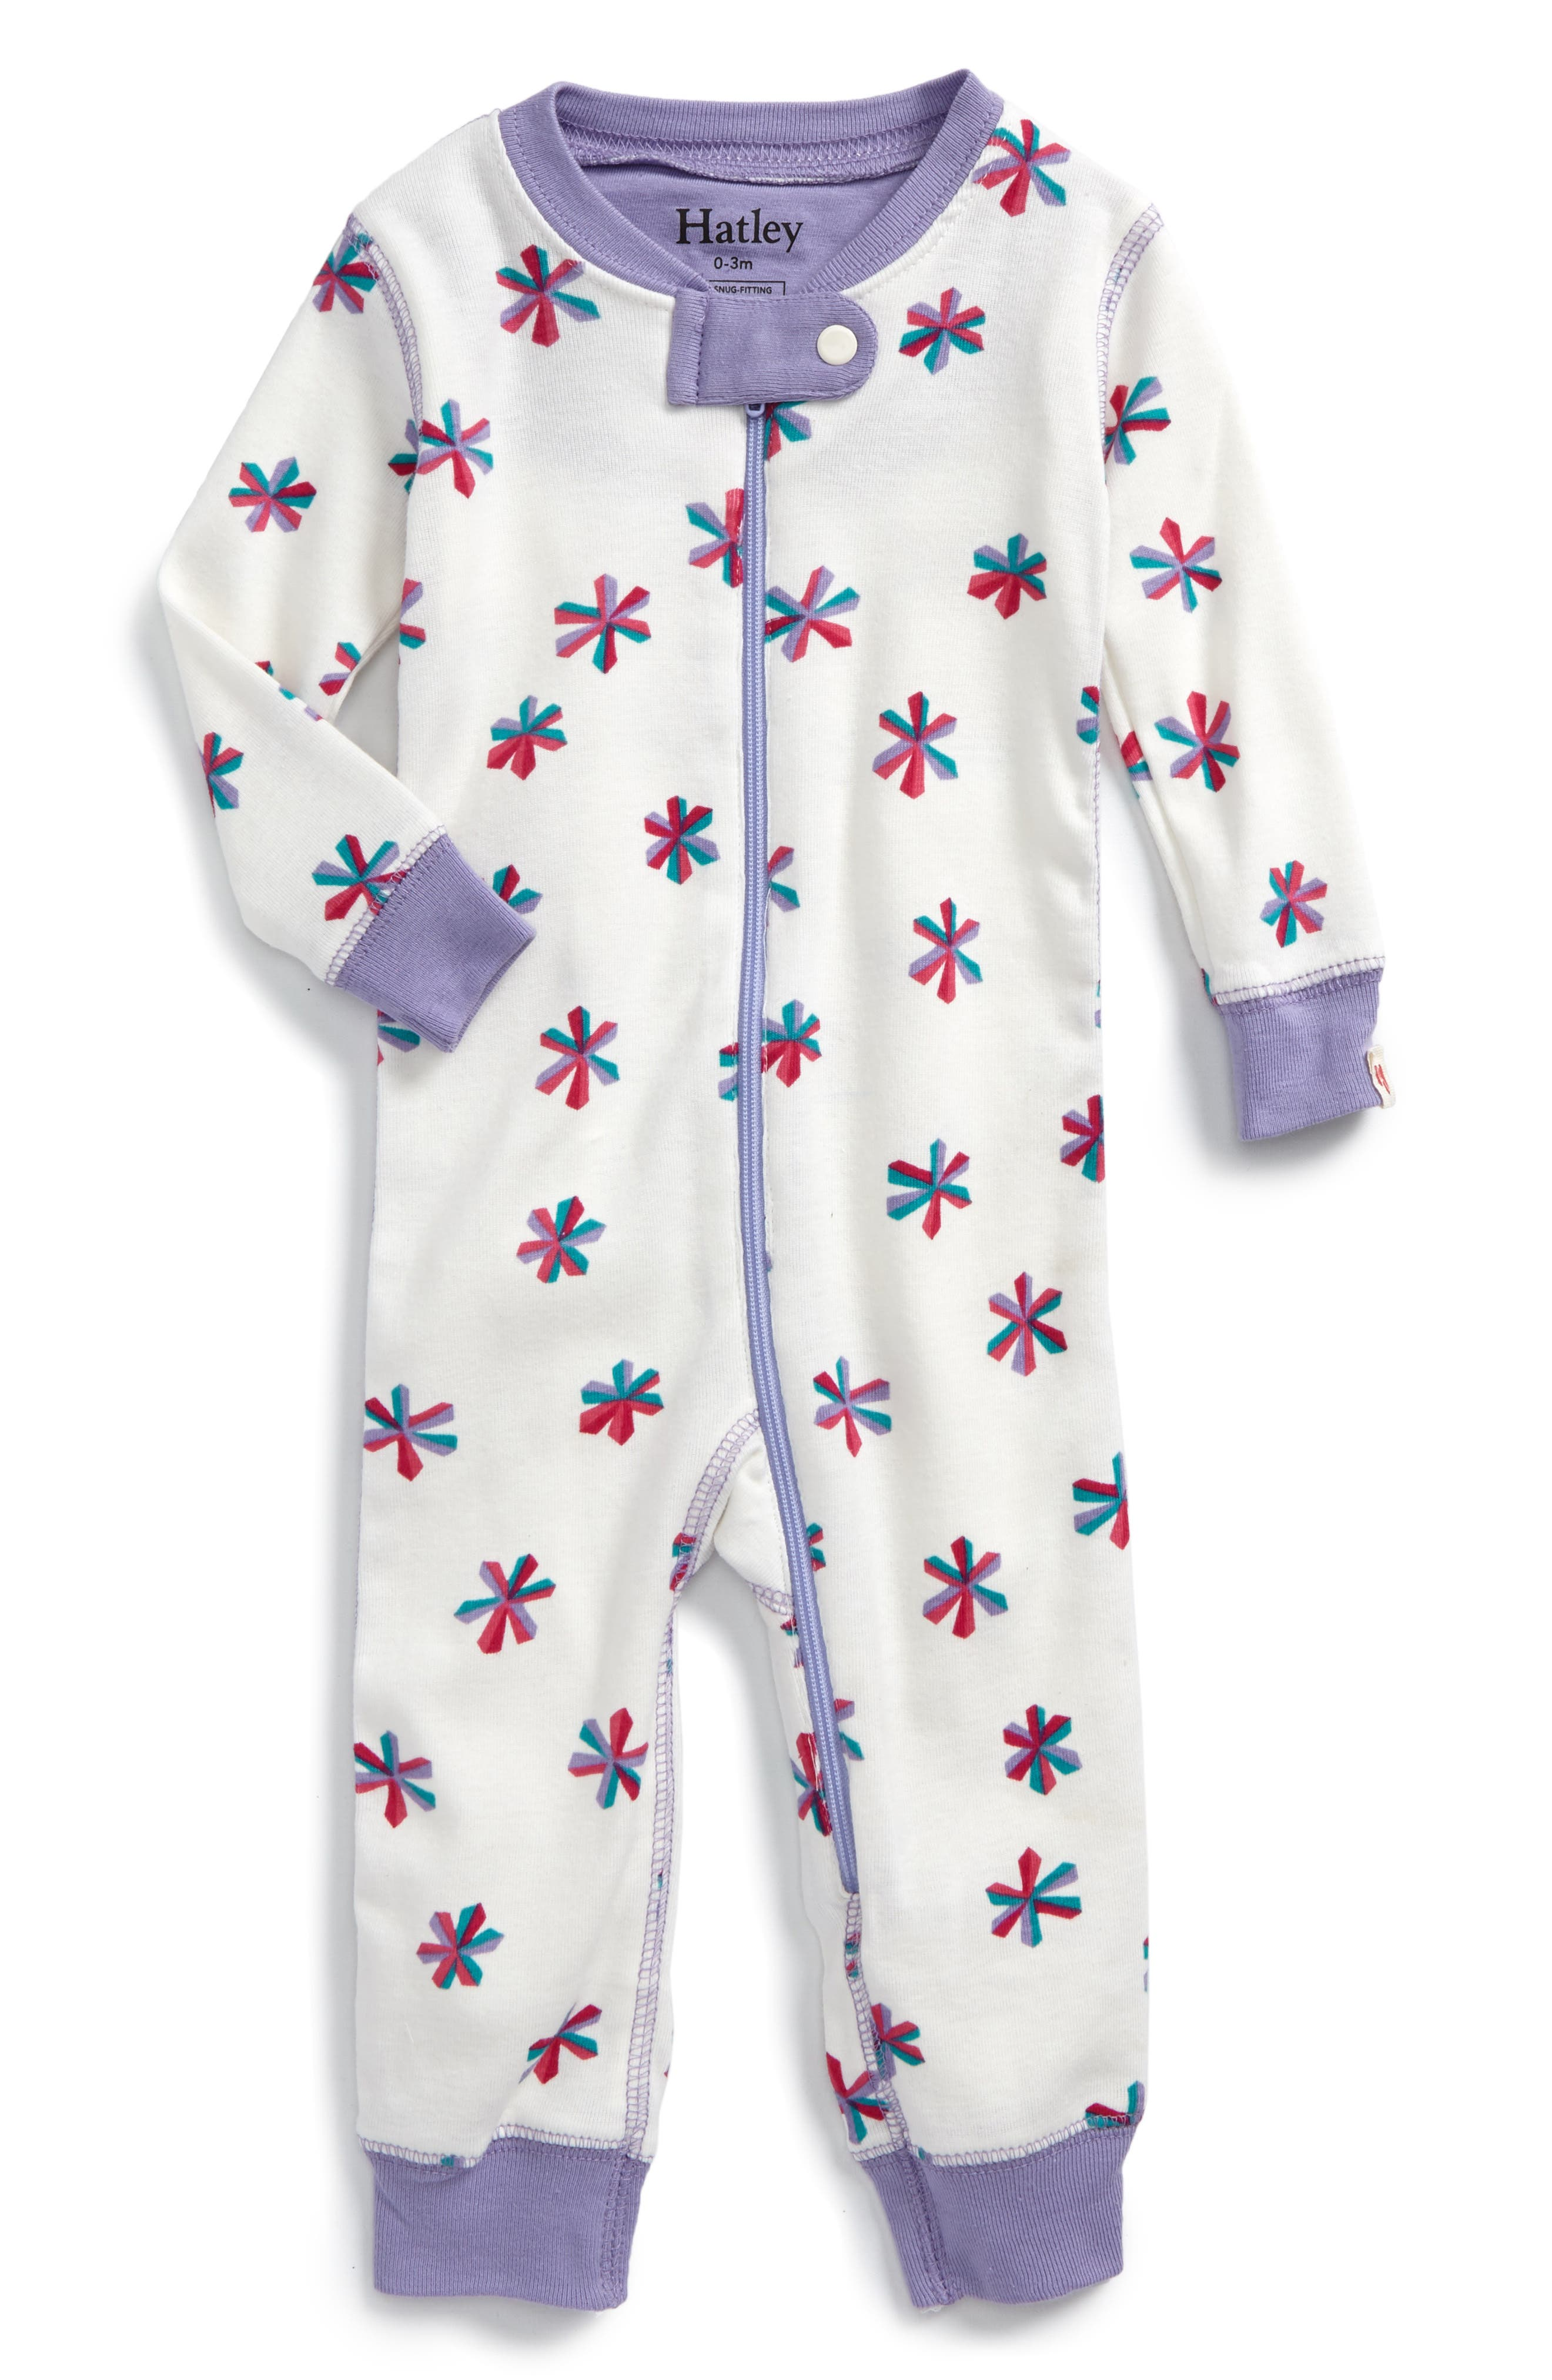 Because we love giving babies (and kids!) eco-friendly fabrics to wear right next to their tender newborn skin, all of our baby pajamas are made from % organic cotton in .